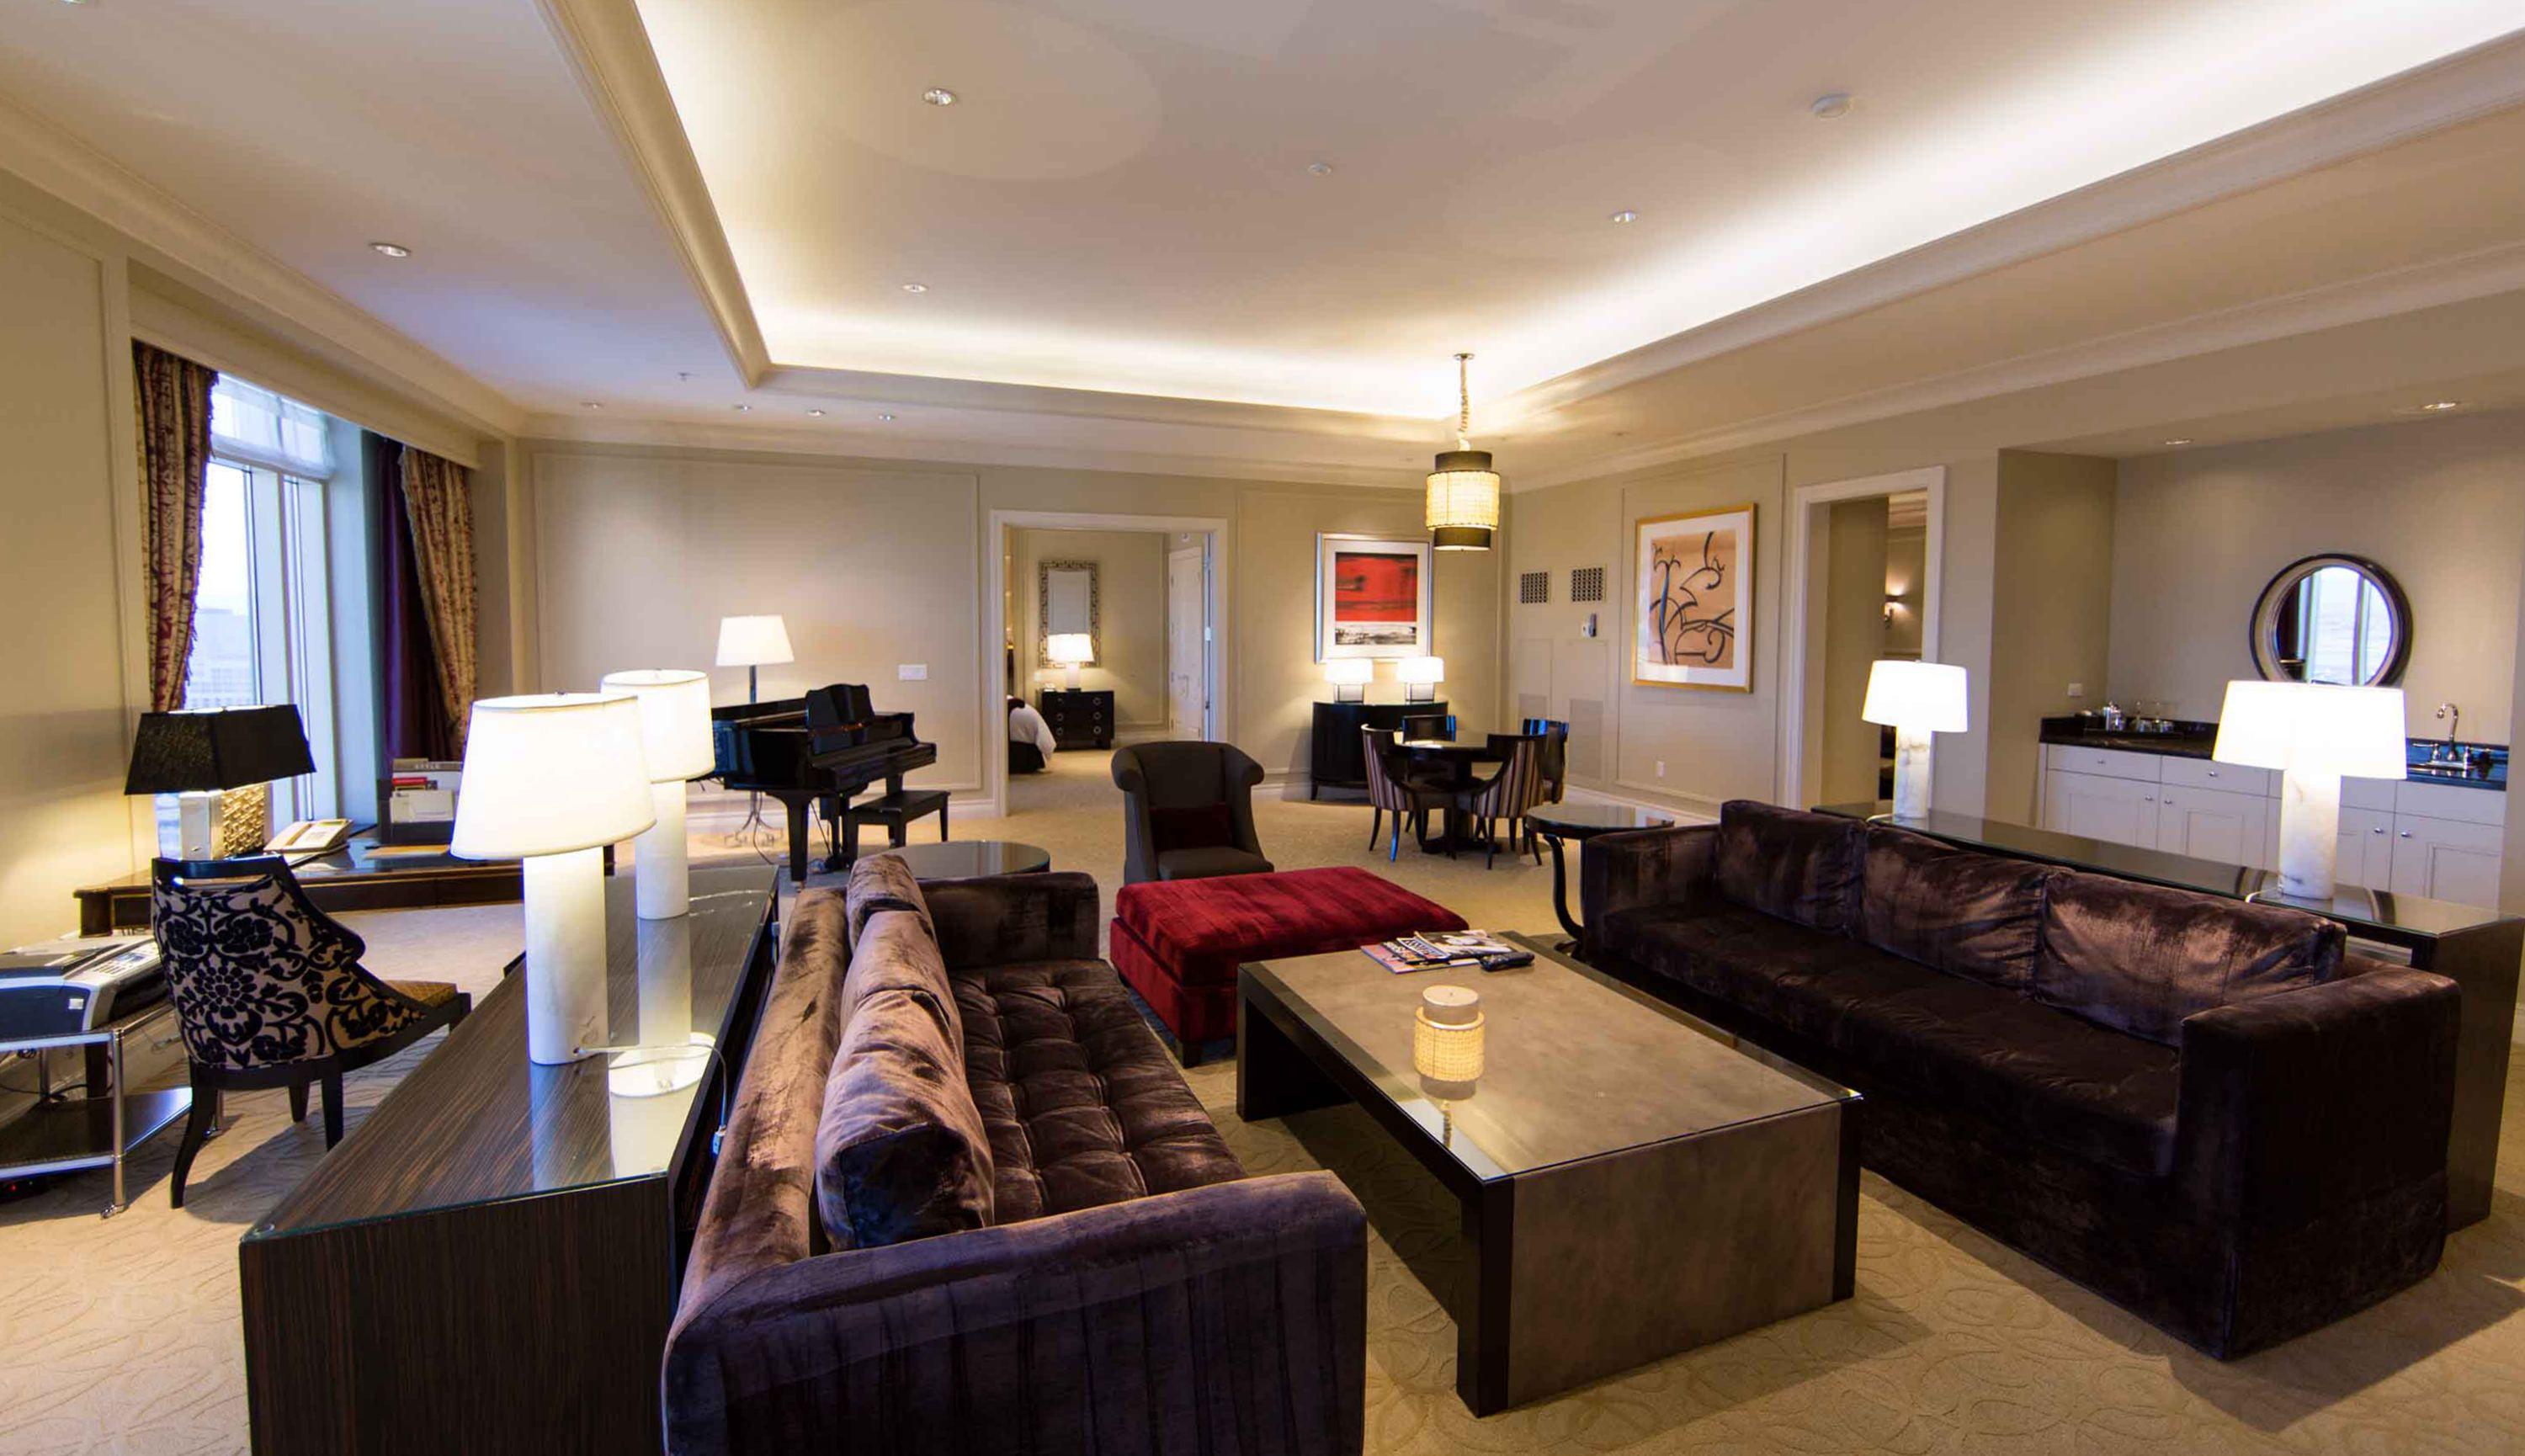 Lago Media Suite At Palazzo Pretty Vegas Hotel Suites Pinterest Vegas Las Vegas Suites